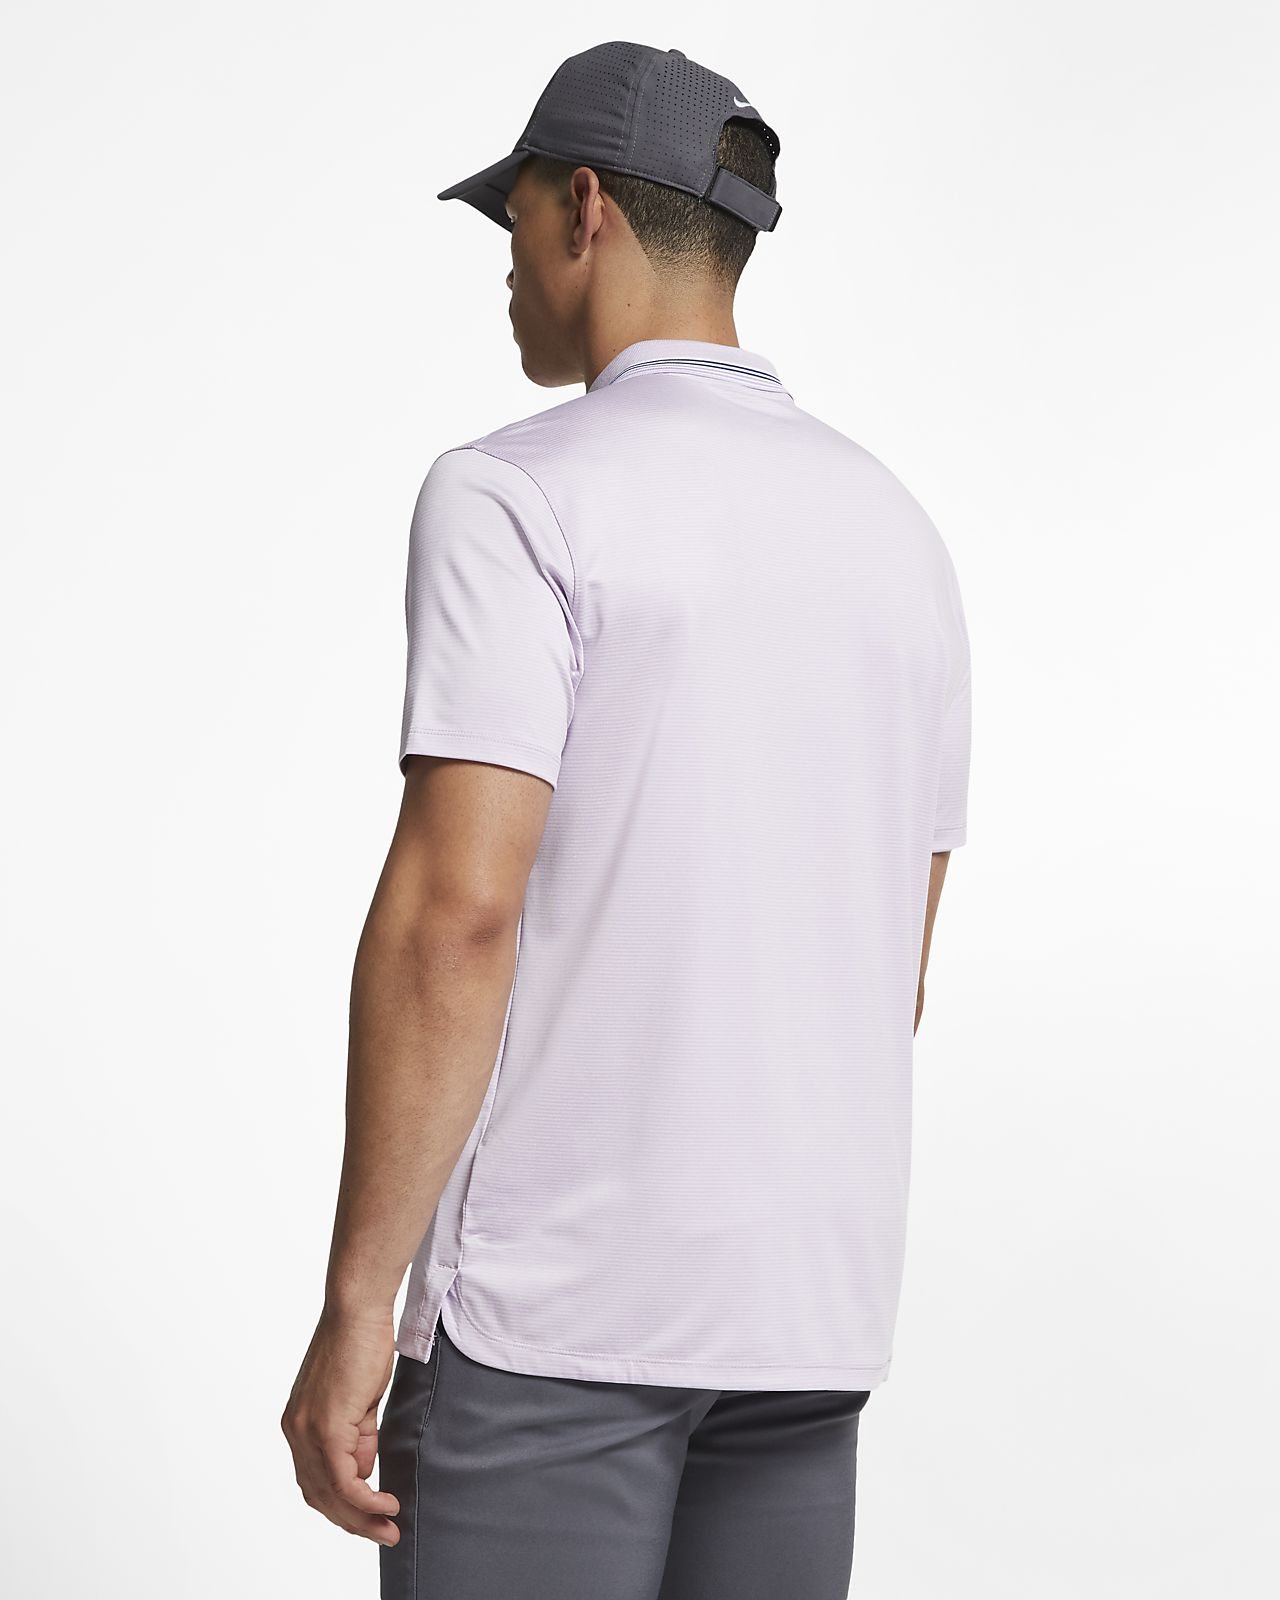 4fbffb7ce5 Nike Dri-FIT Vapor Men's Golf Polo. Nike.com